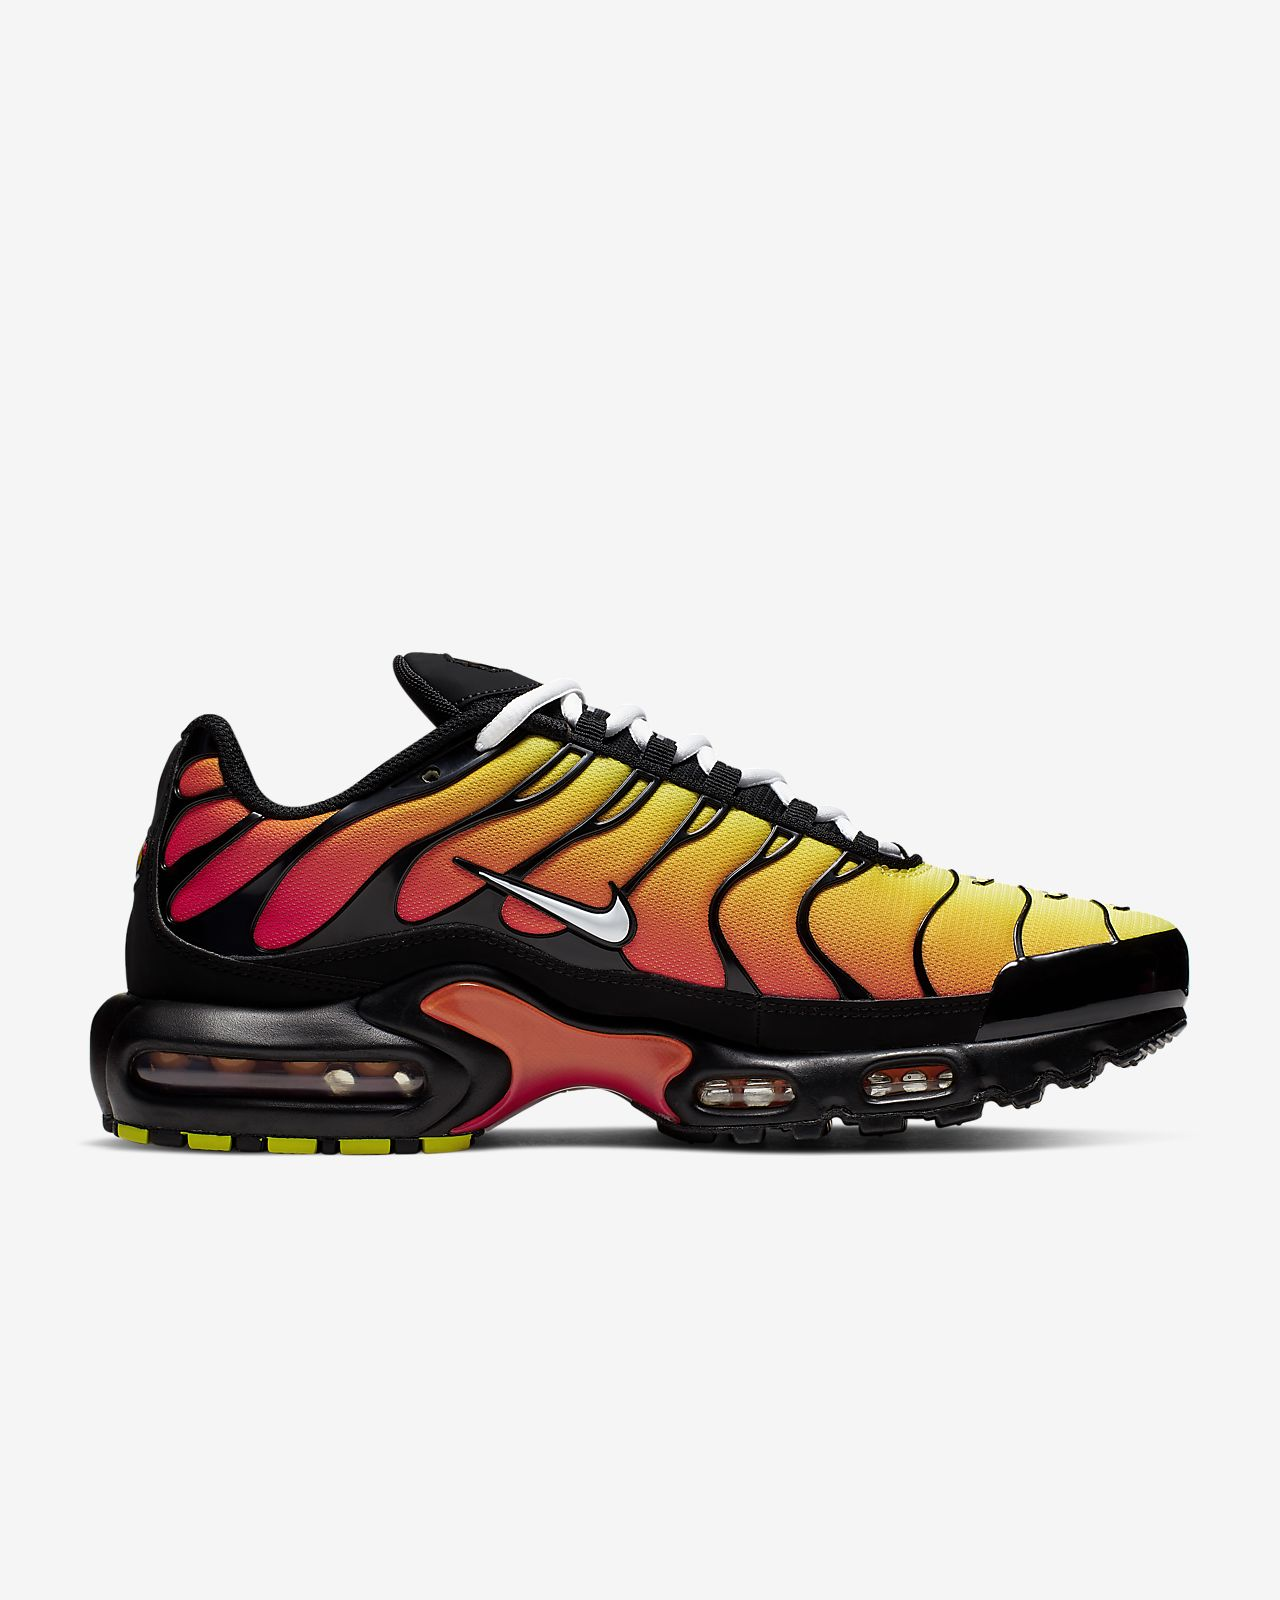 Nike Men's Air Max Plus BlackSandAnthraciteDesert Sand